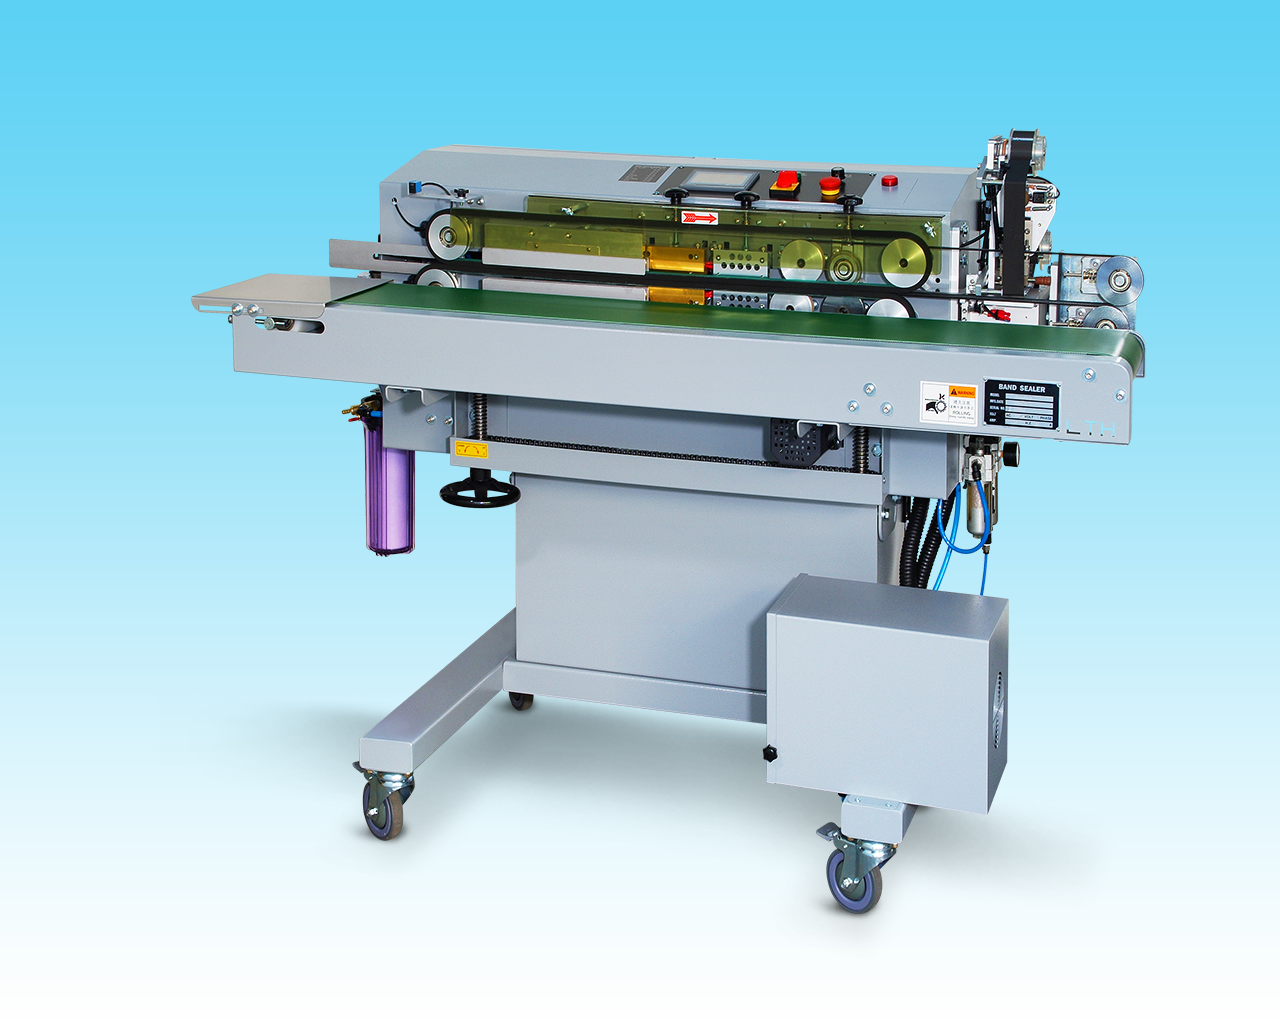 sealing packaging machine、band sealer、band sealing、sealing packaging、sealing machinery、sealer machine